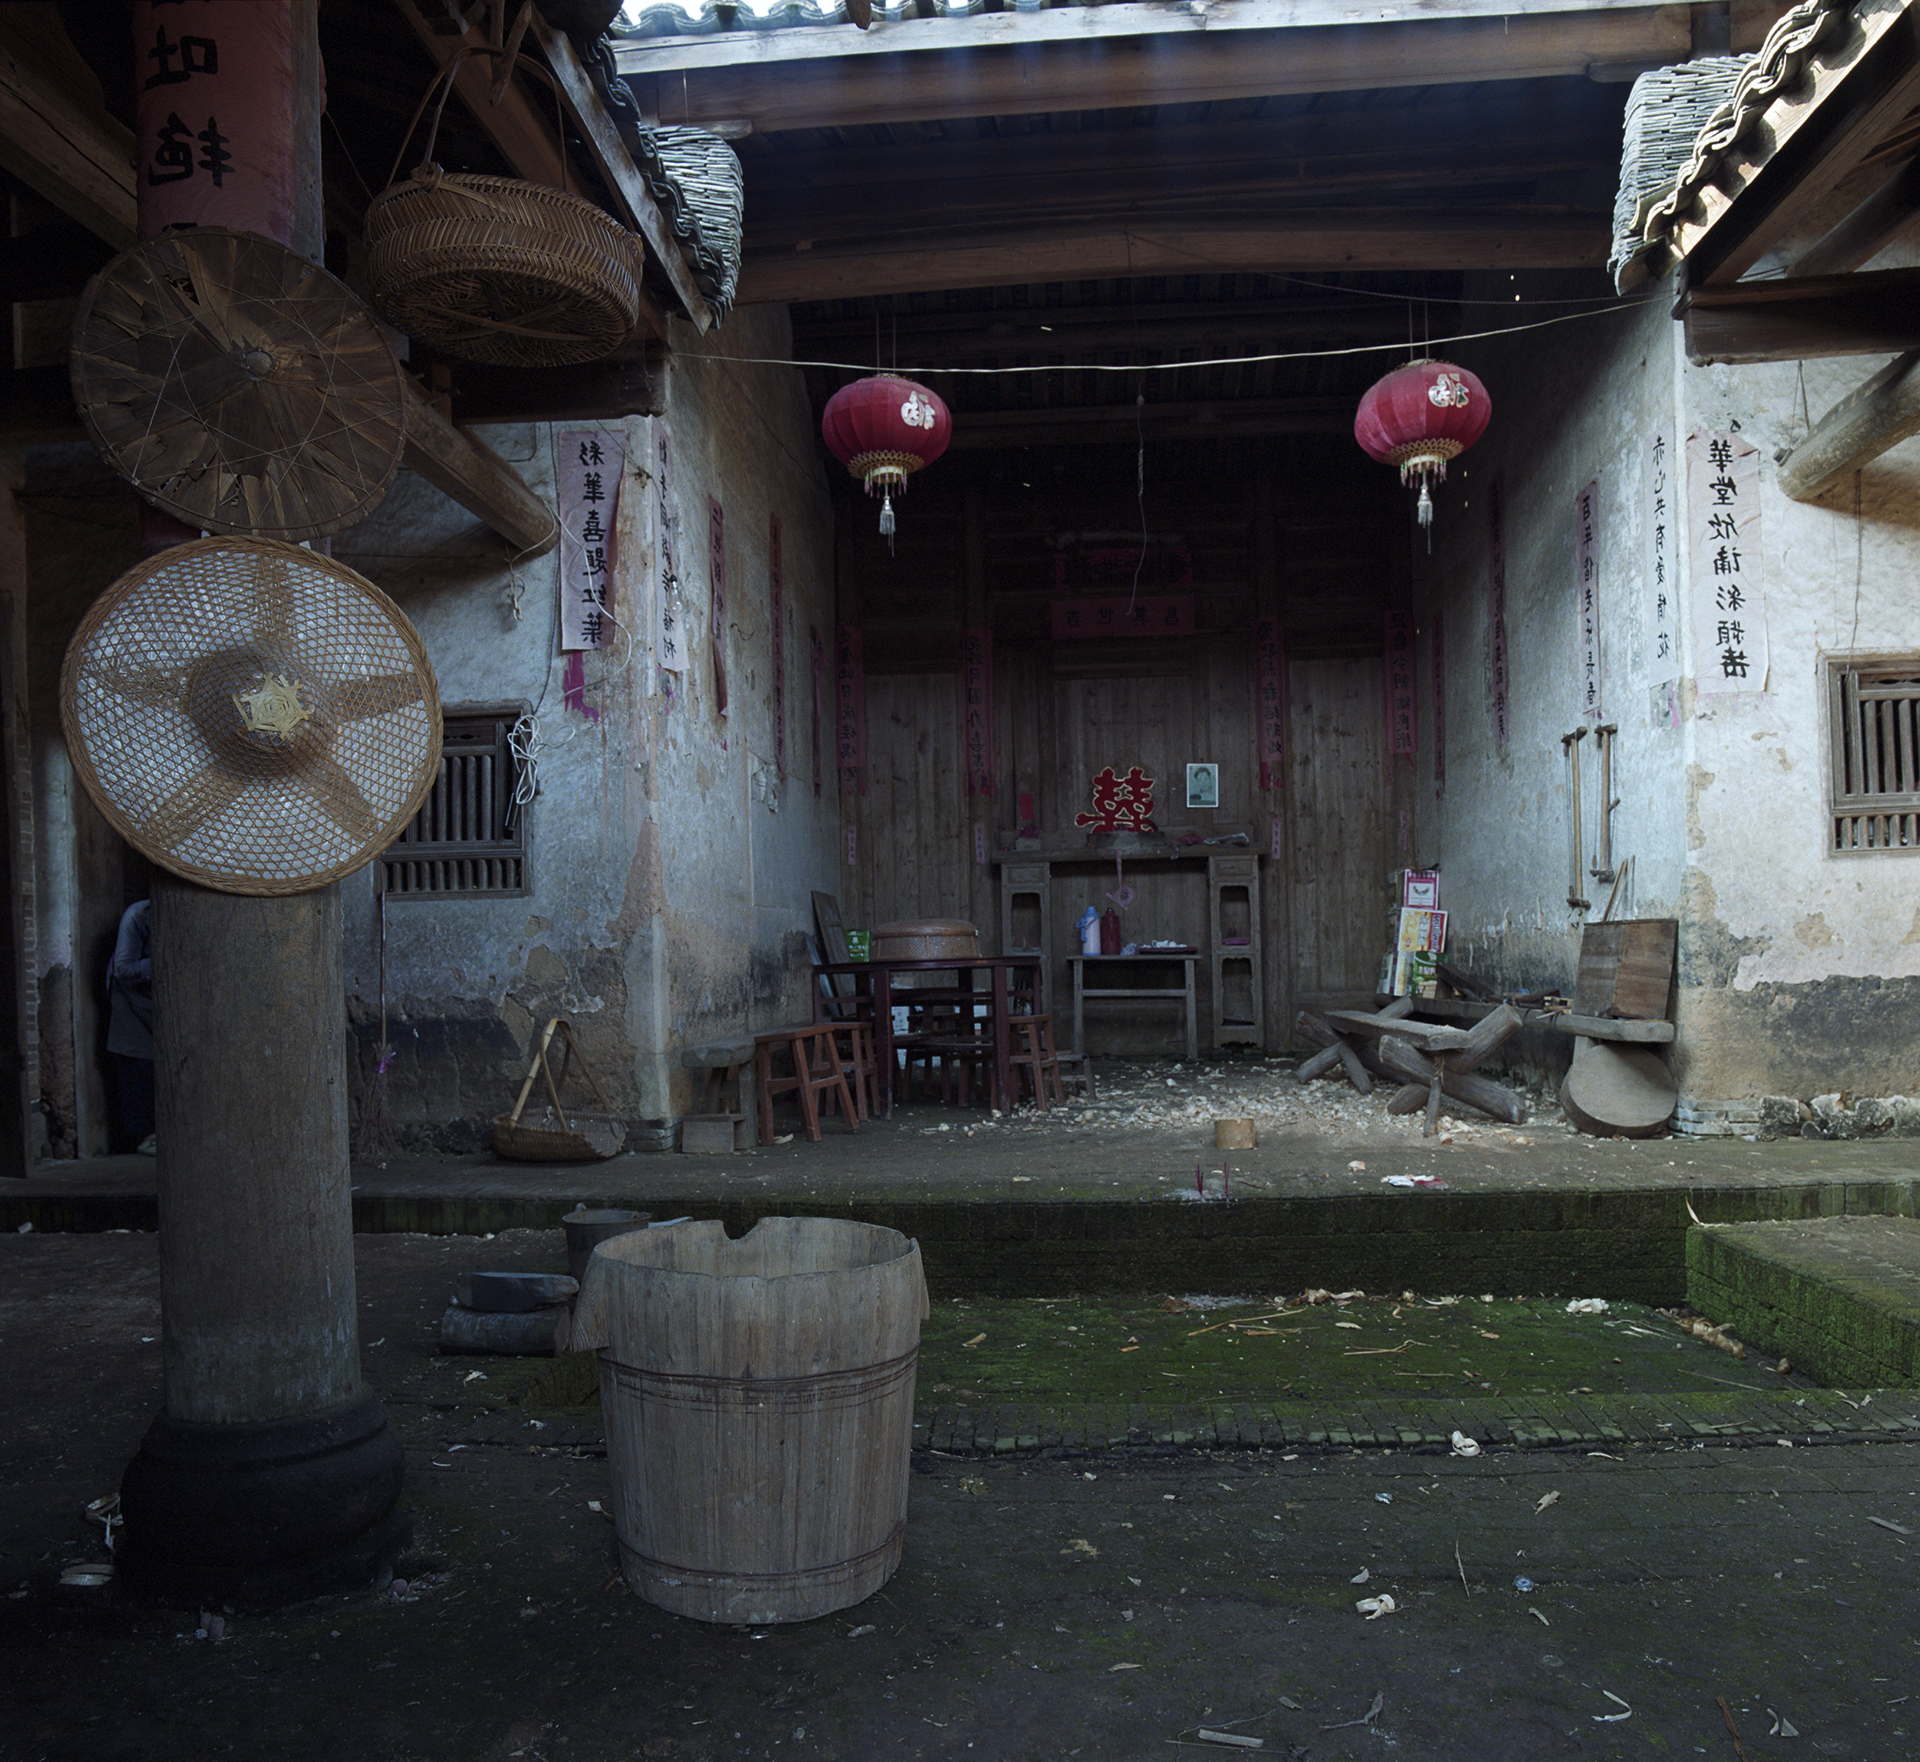 2009 Fujian -Communal court and water basin. Rain water was collected here.